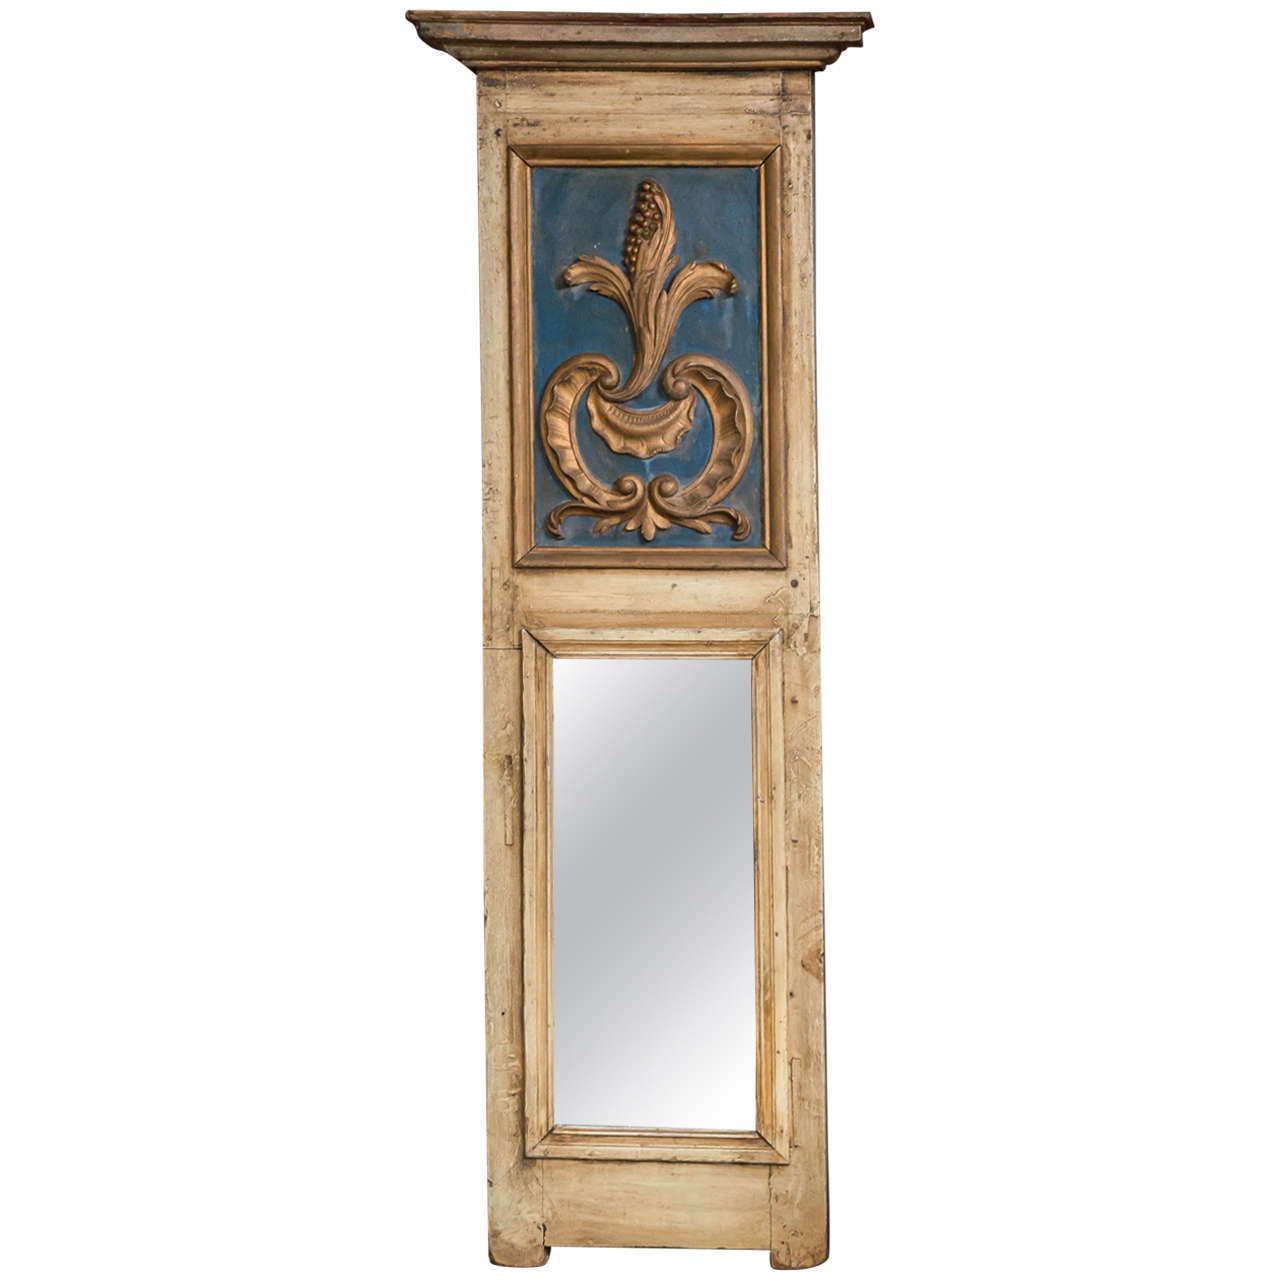 Painted narrow trumeau mirror french circa 1890 at 1stdibs for Narrow mirror